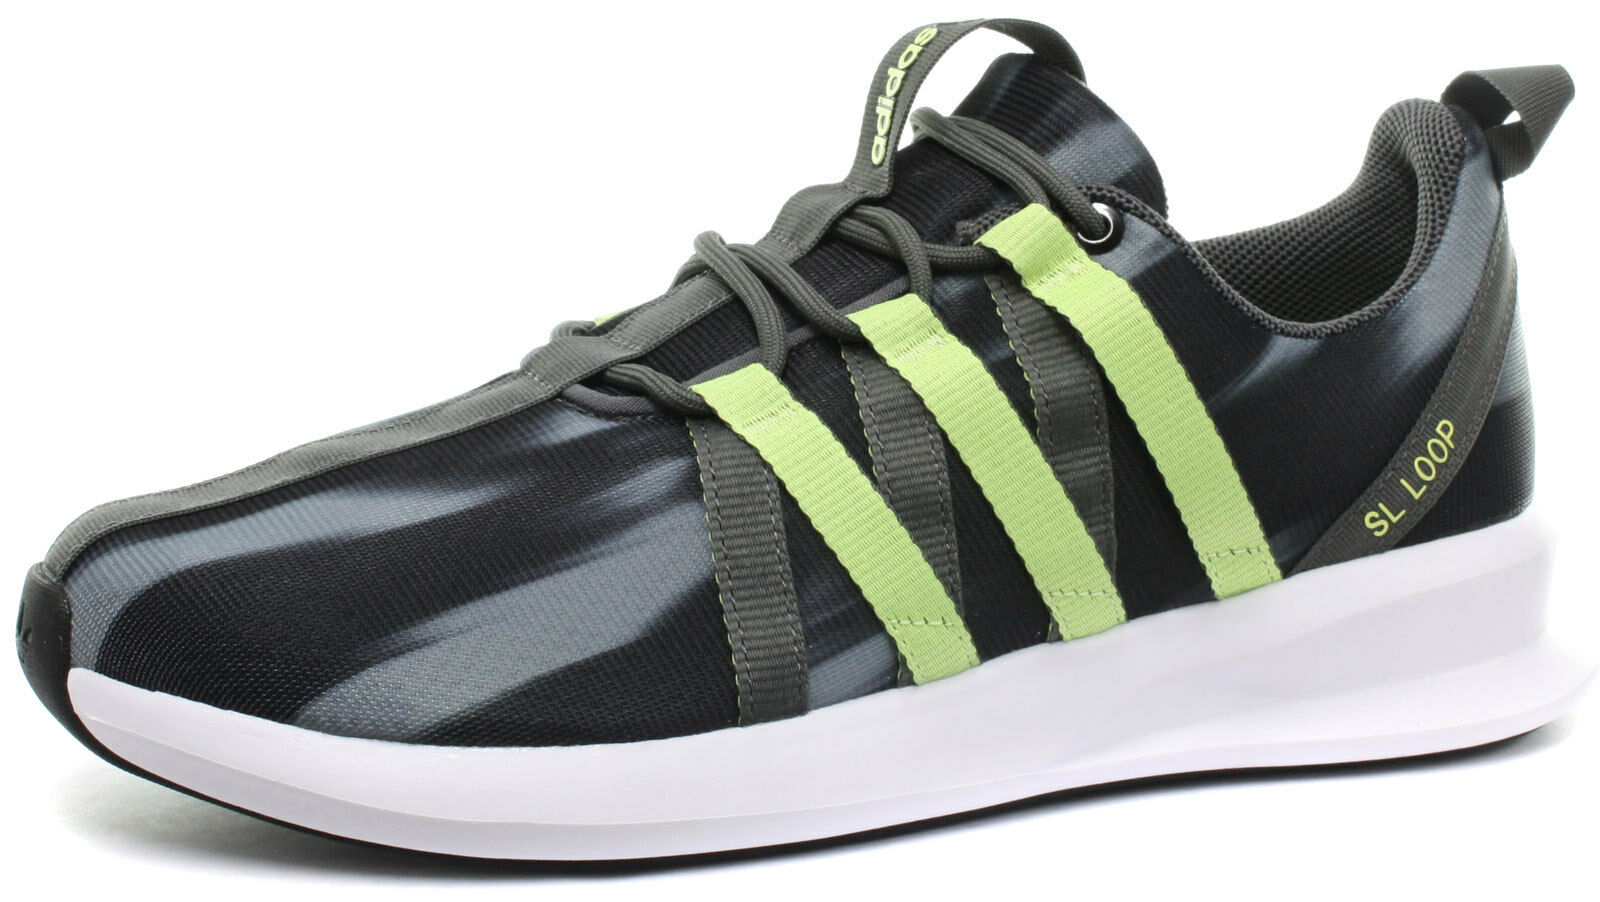 New Adidas Originals SL ALL Loop Racer homme Trainers ALL SL TailleS C76998 be50dd